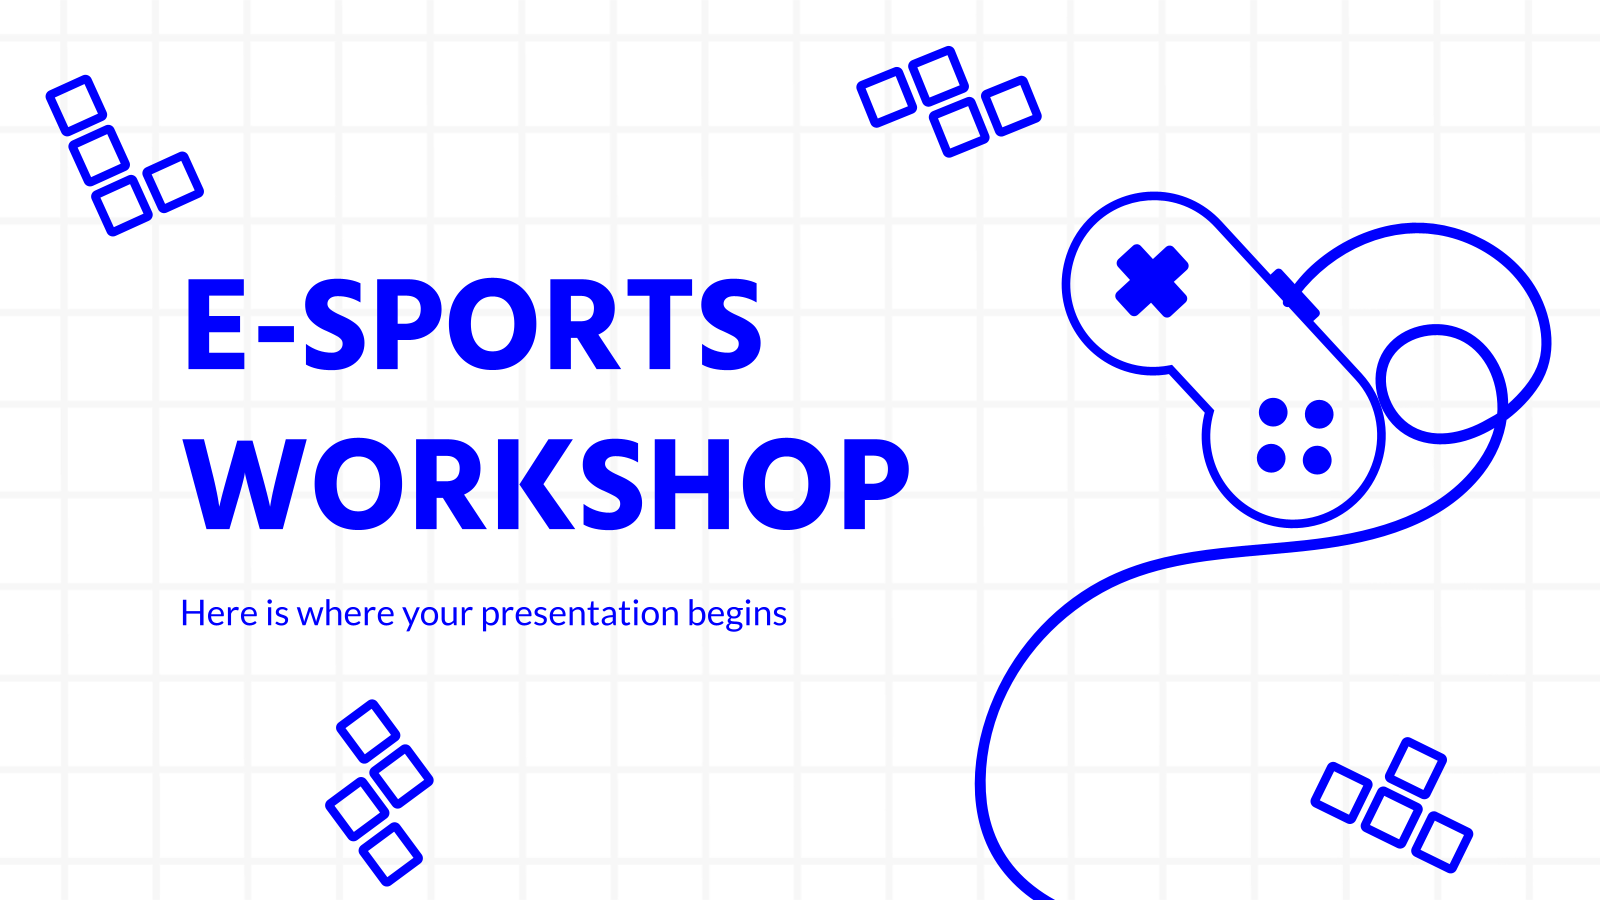 E-Sports Workshop presentation template